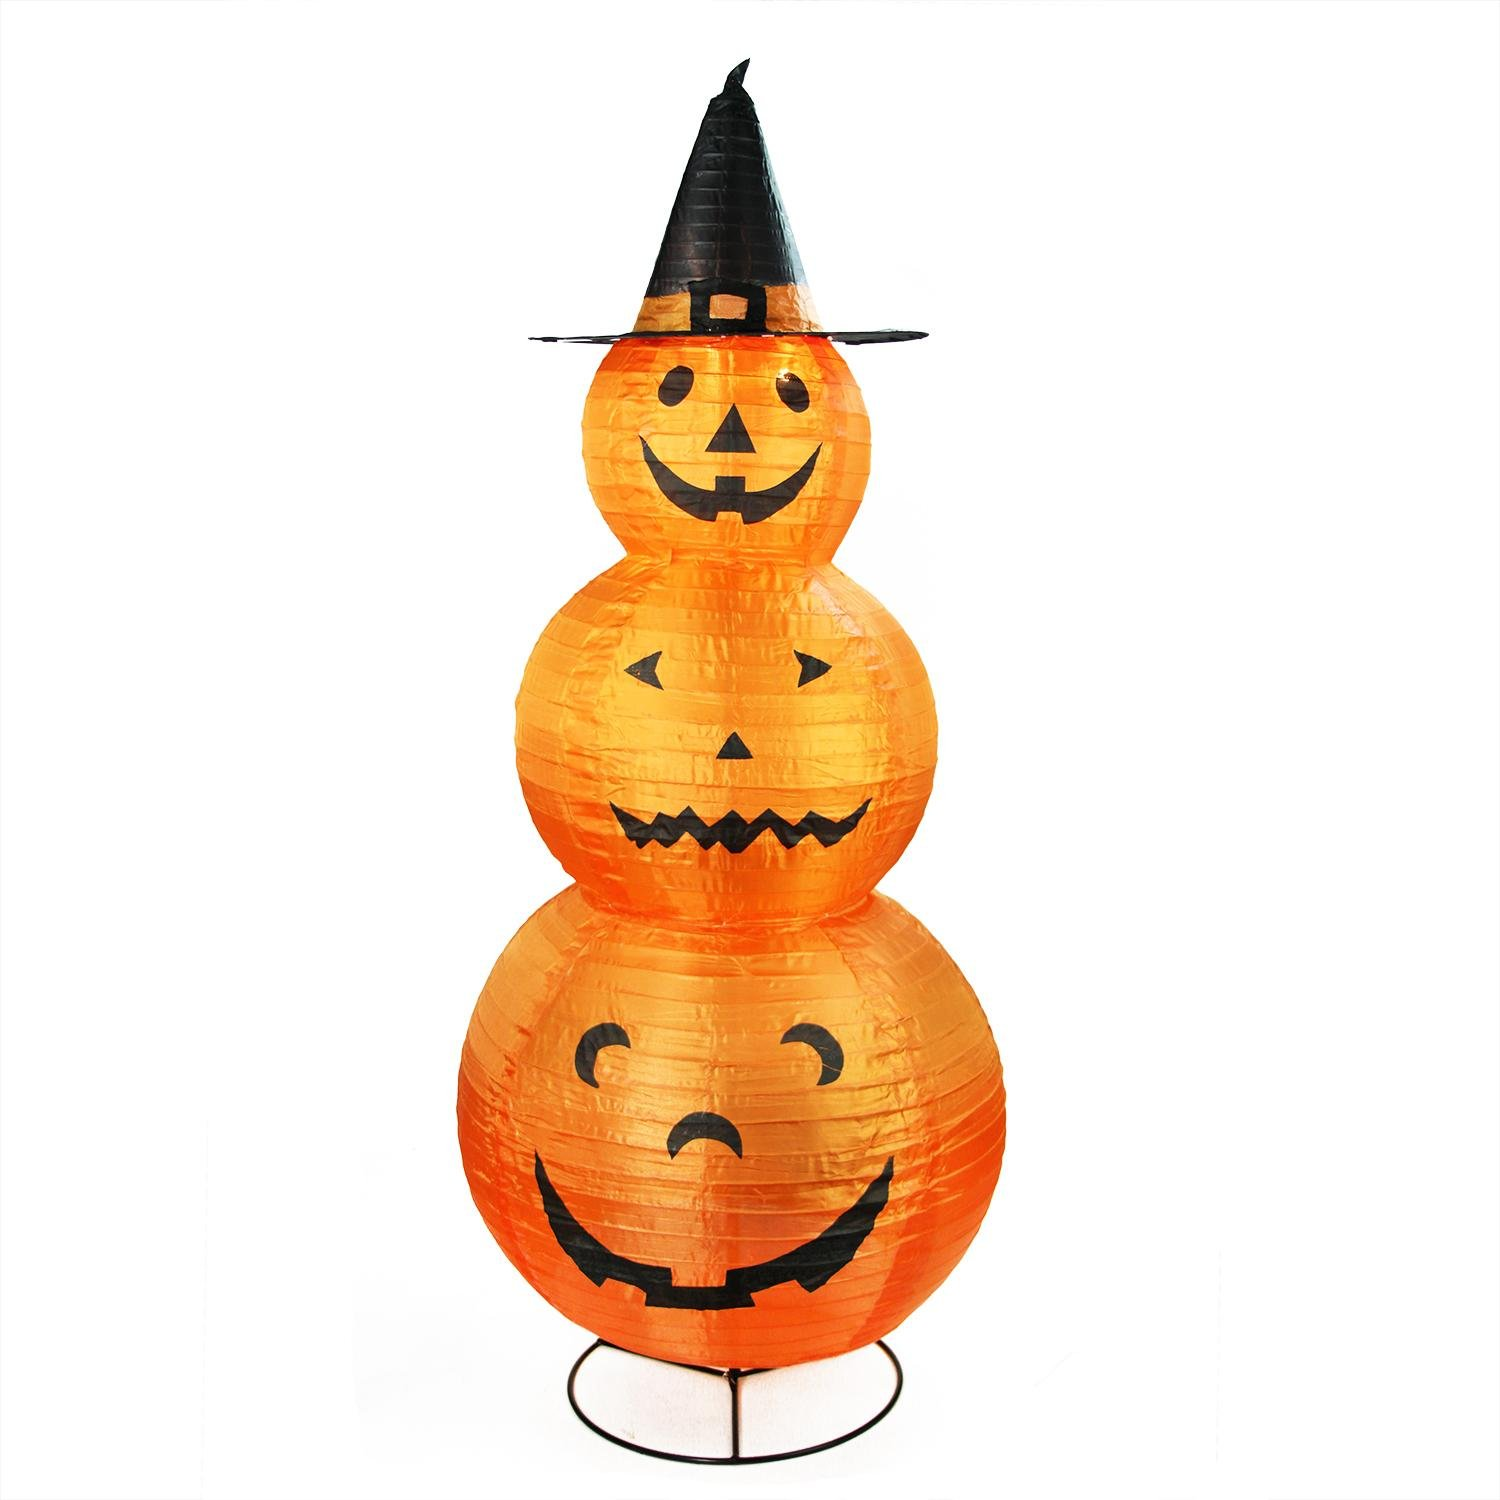 Northlight Pre-Lit Black Pumpkins with Witch Hat Halloween Yard Art Decoration, 48'', Orange